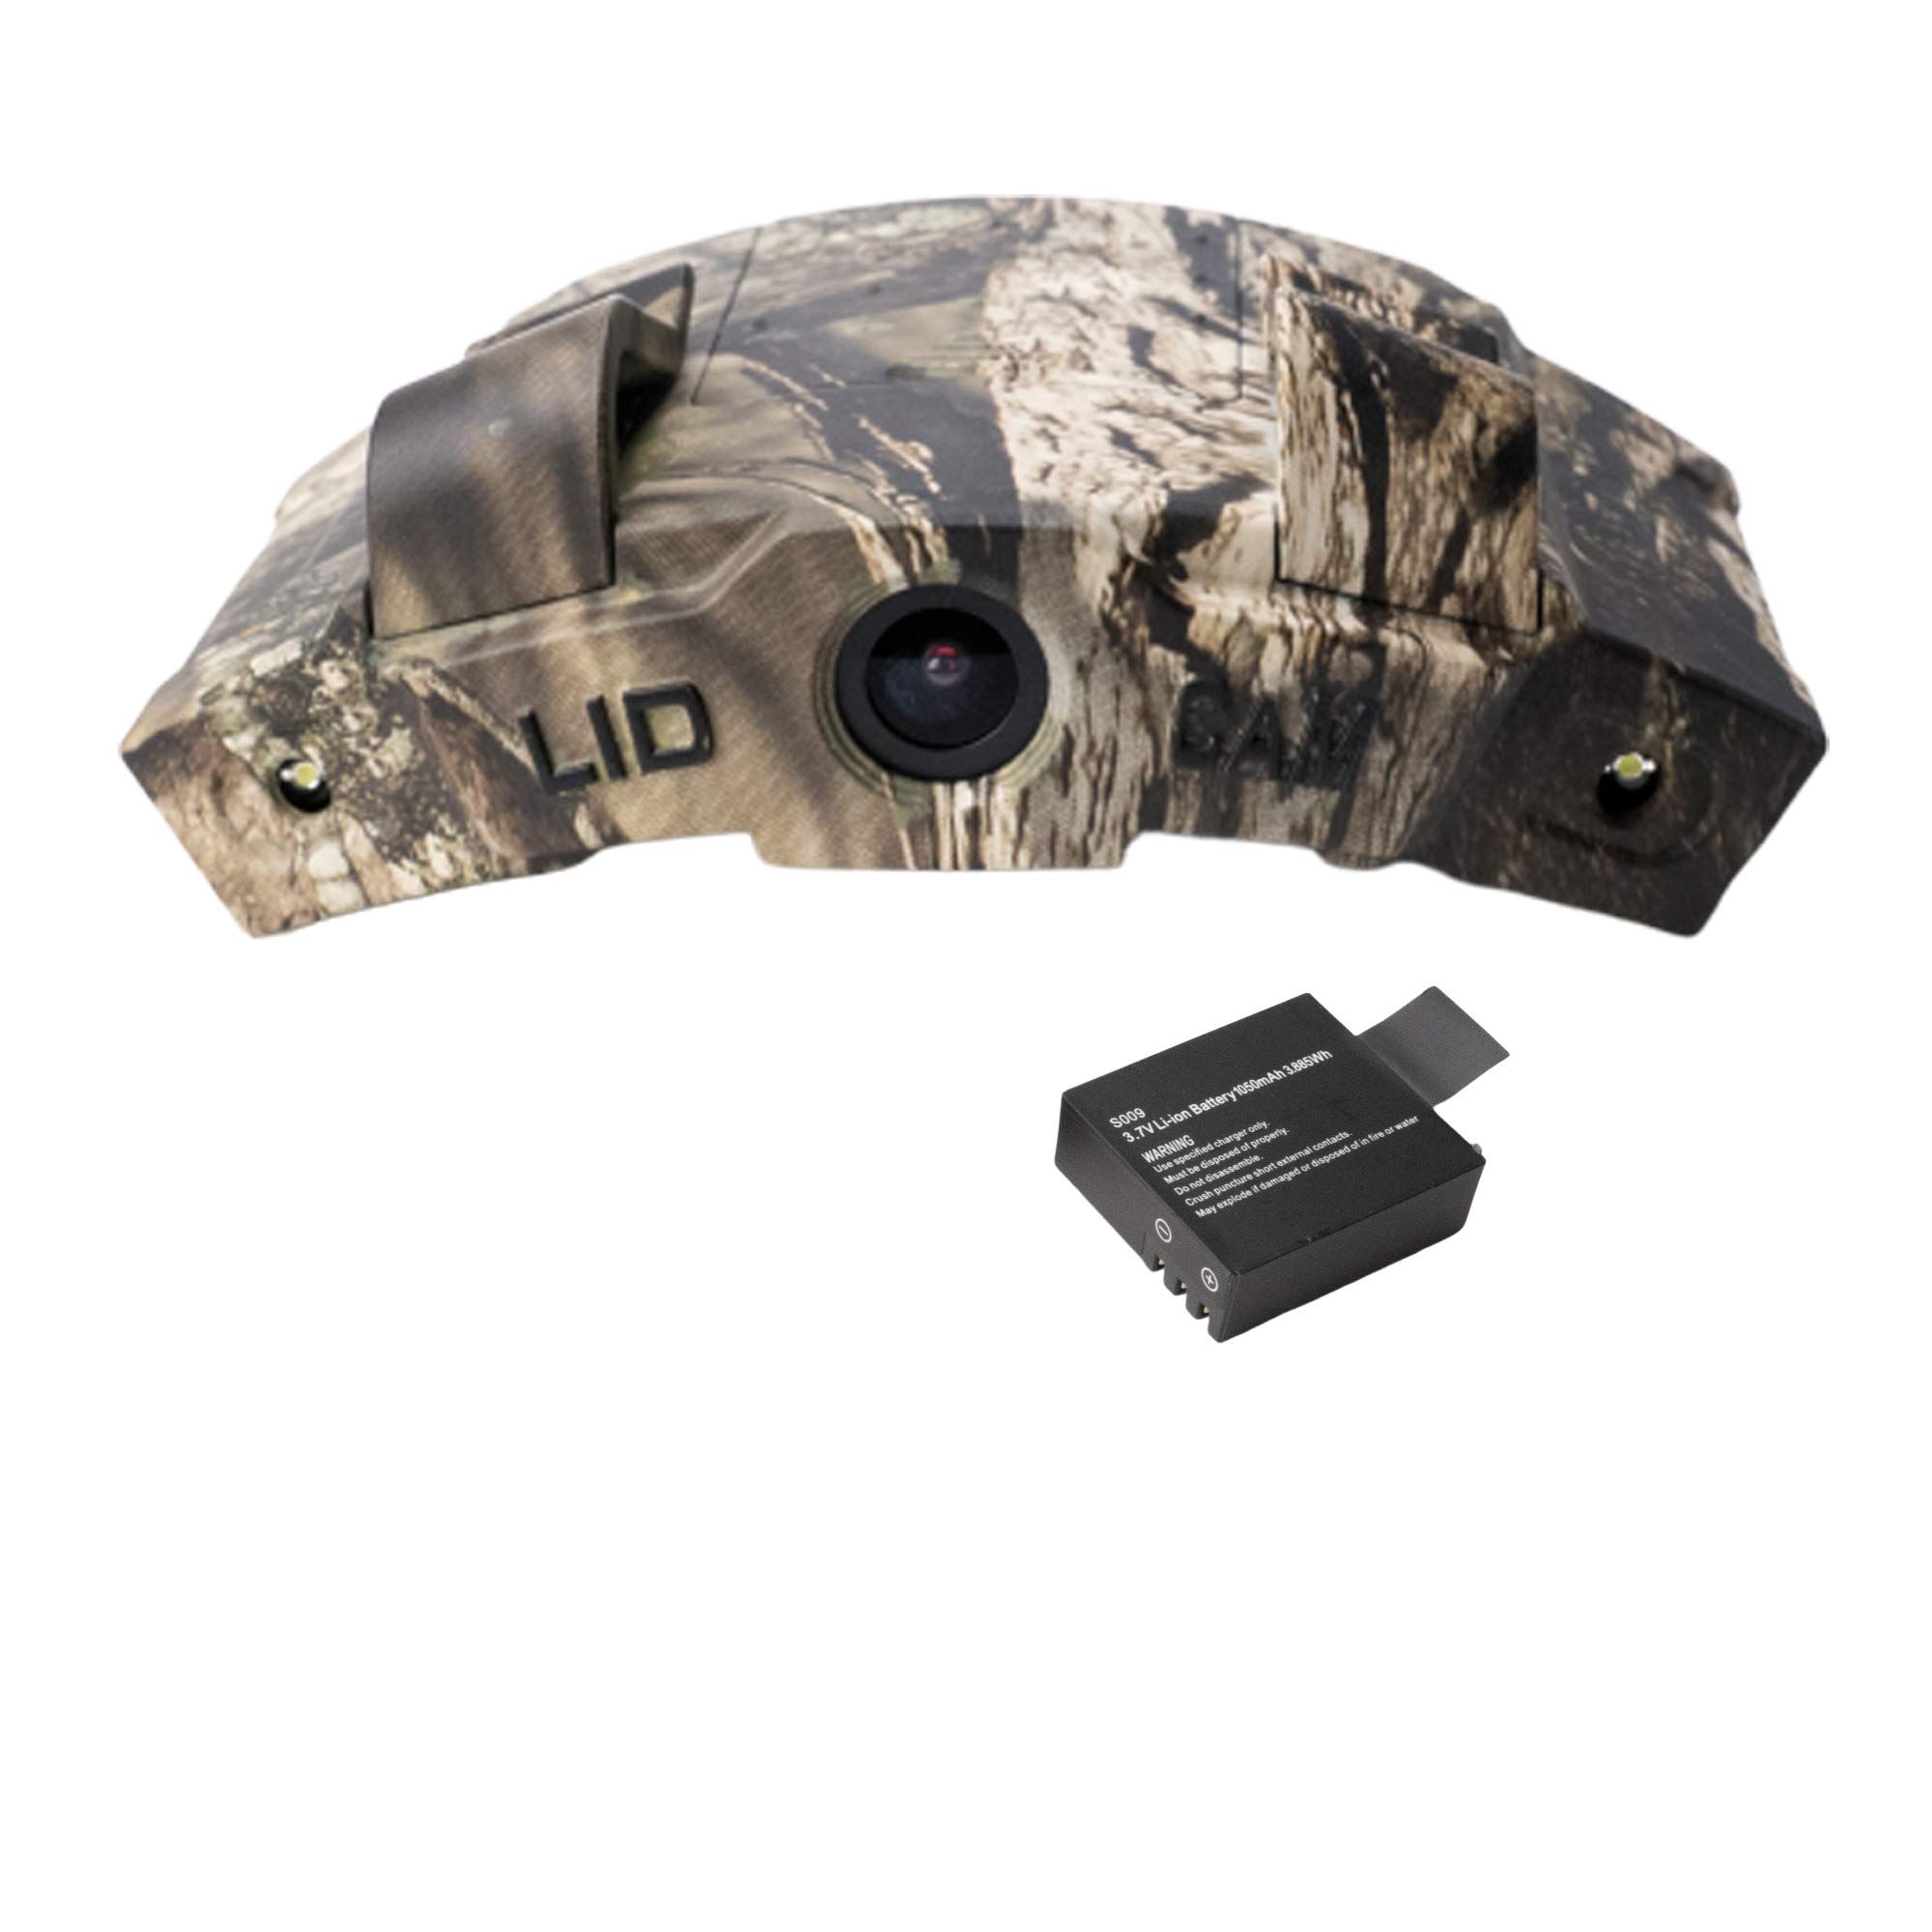 LiDCAM LC-WF Hands Free Digital Camouflage Action Camera, 1080P HD Wi-Fi with Full Audio by LiDCAM